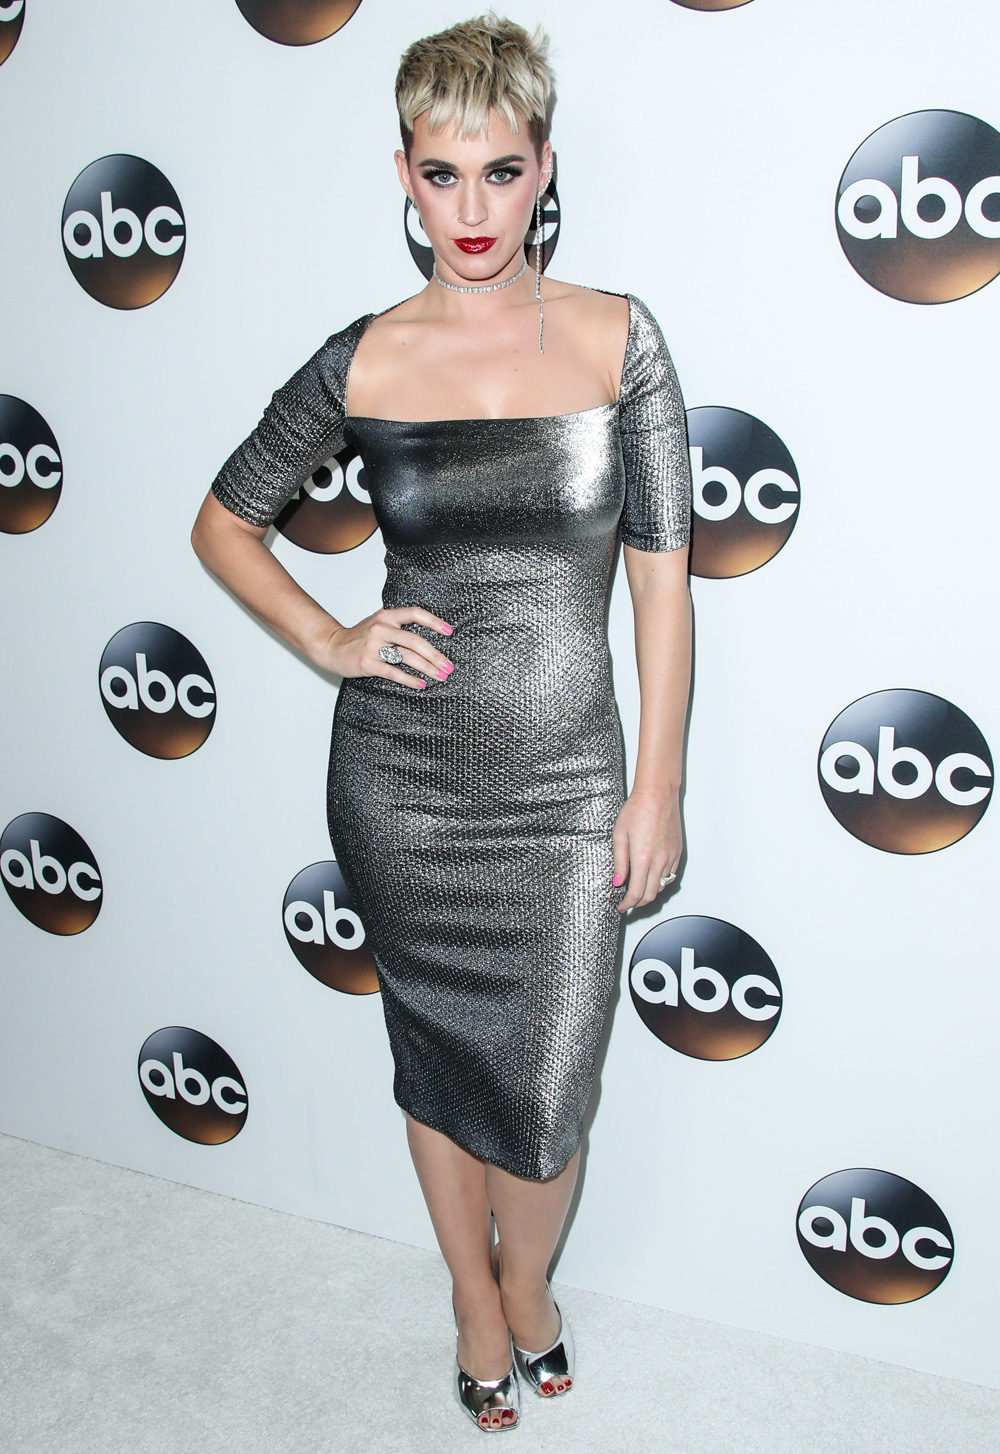 Katy Perry Wearing Area Metallic Dress At Abc All Star Party